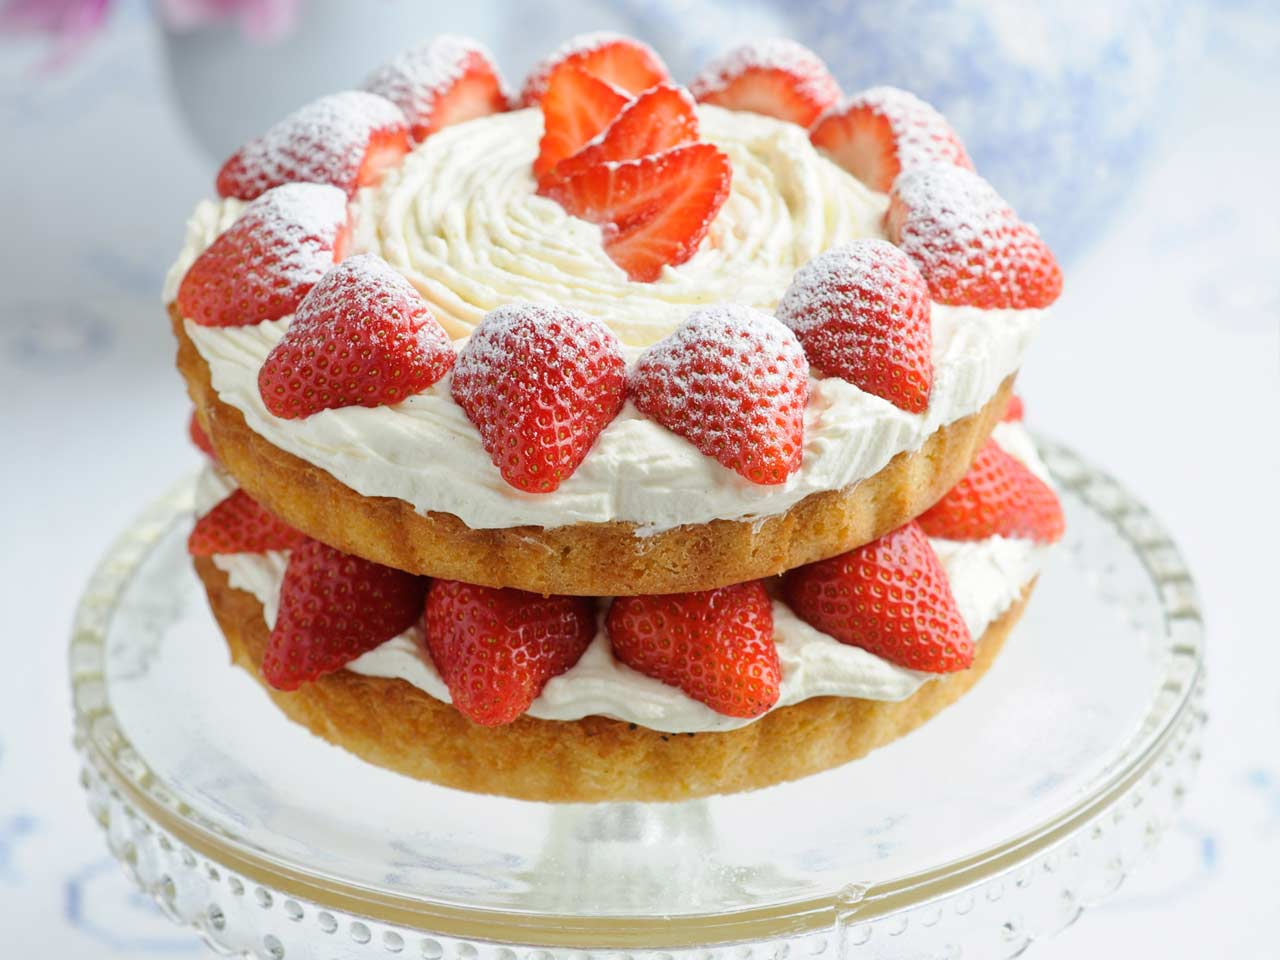 Victoria sponge with fresh strawberries and cream